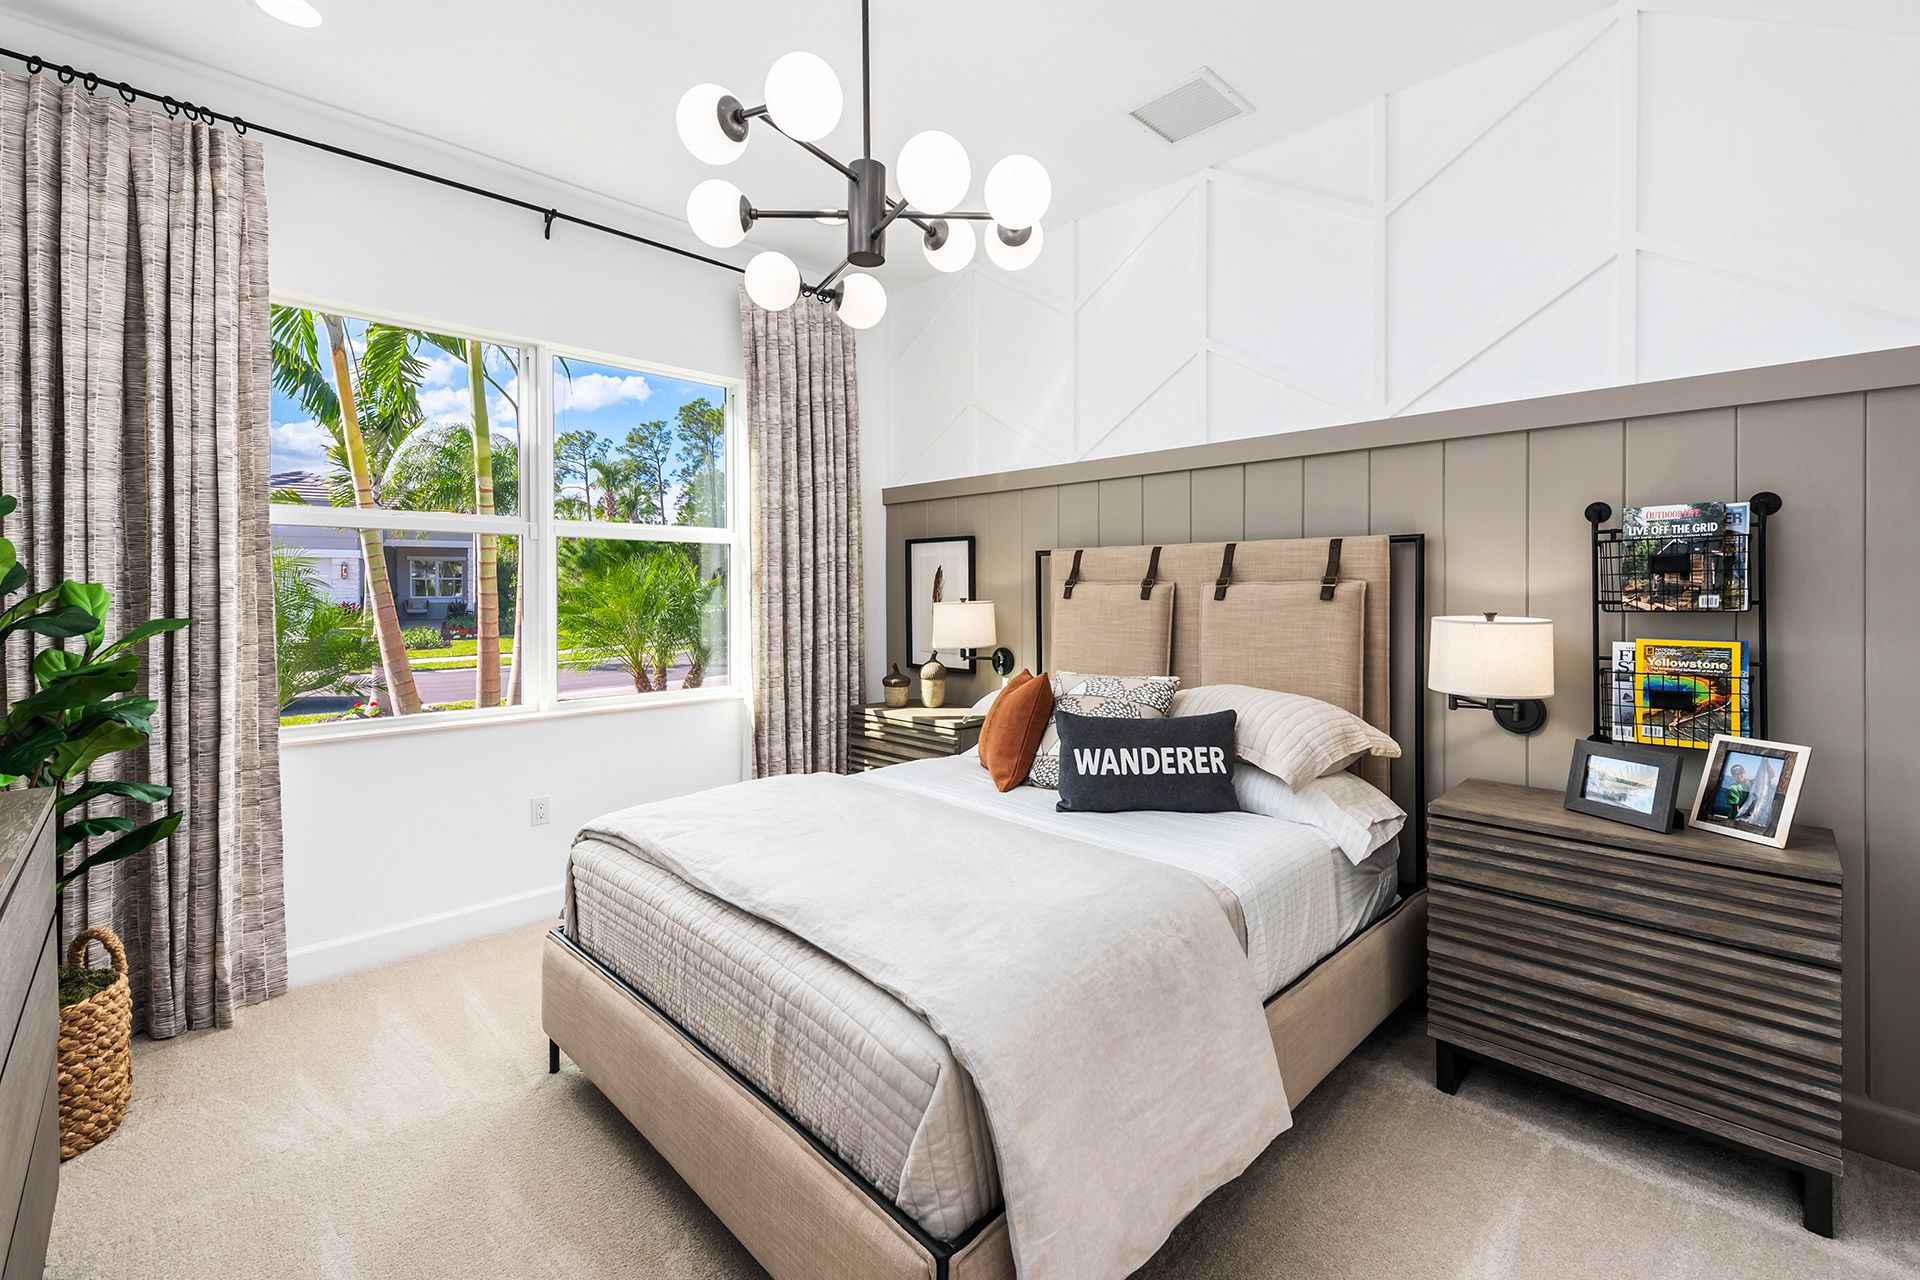 Bedroom featured in the Sanibel By GL Homes in Naples, FL